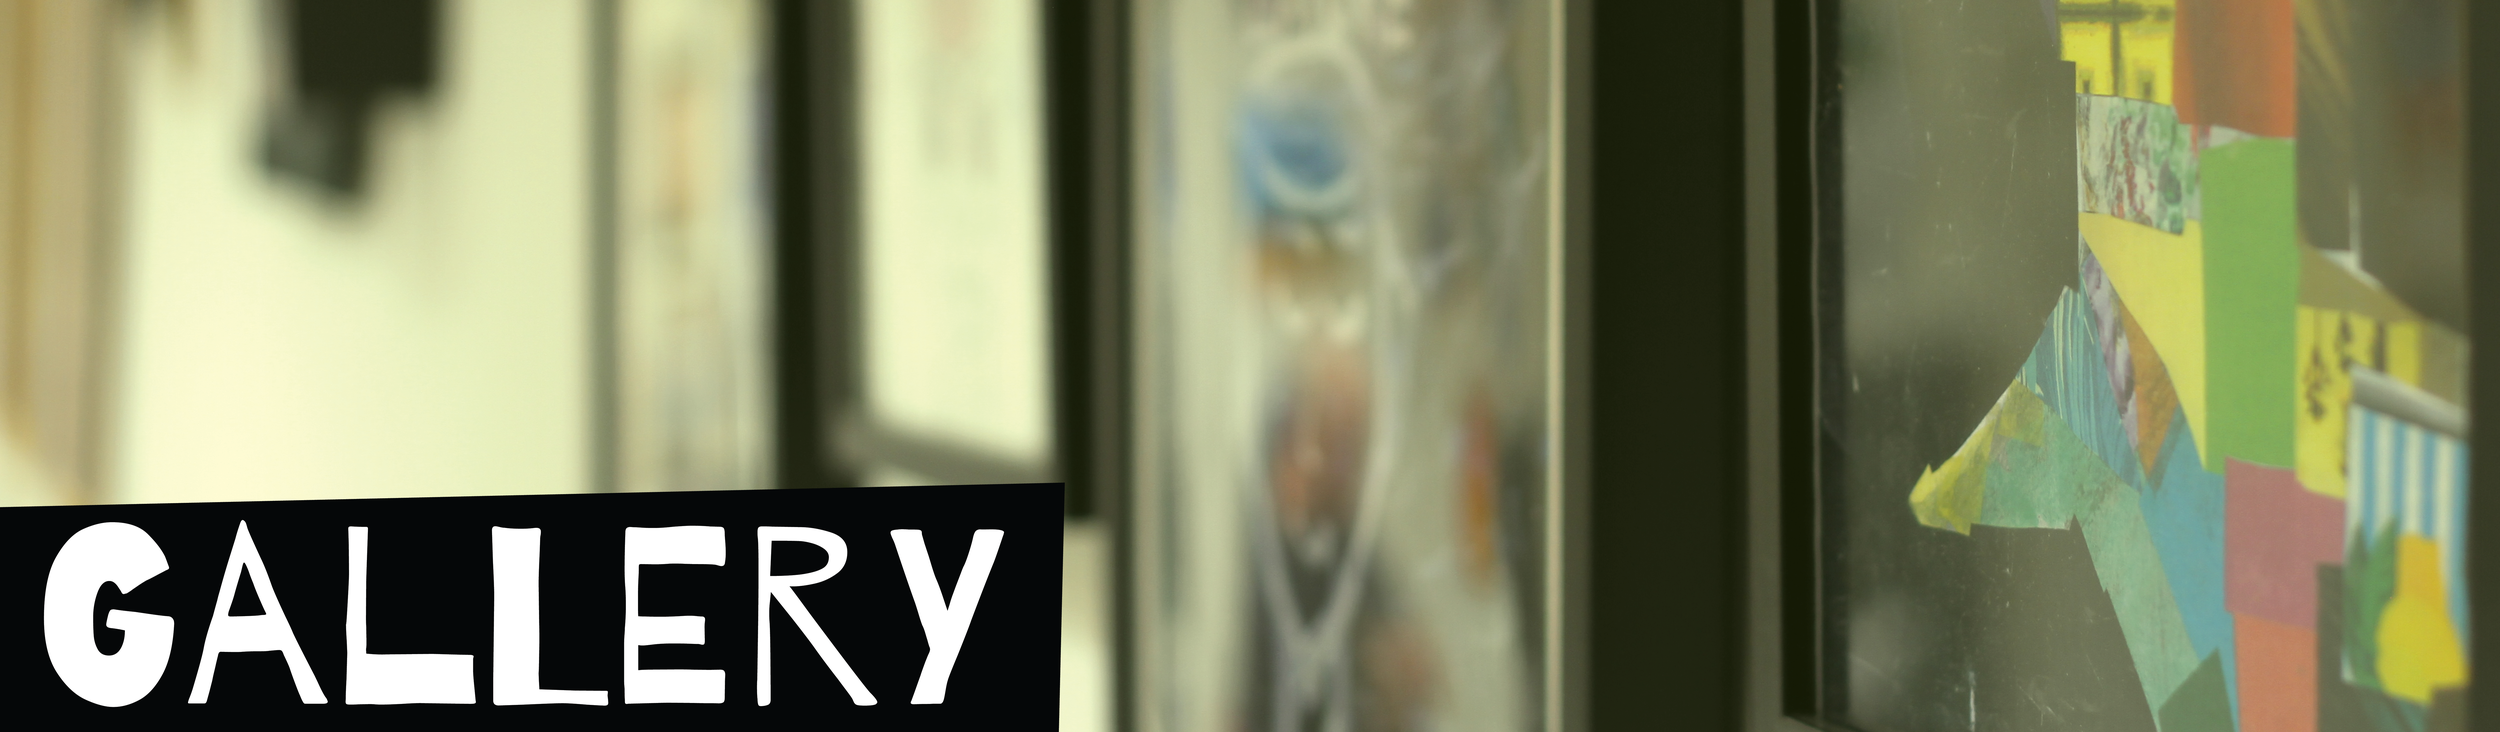 GALLERY-banner.png